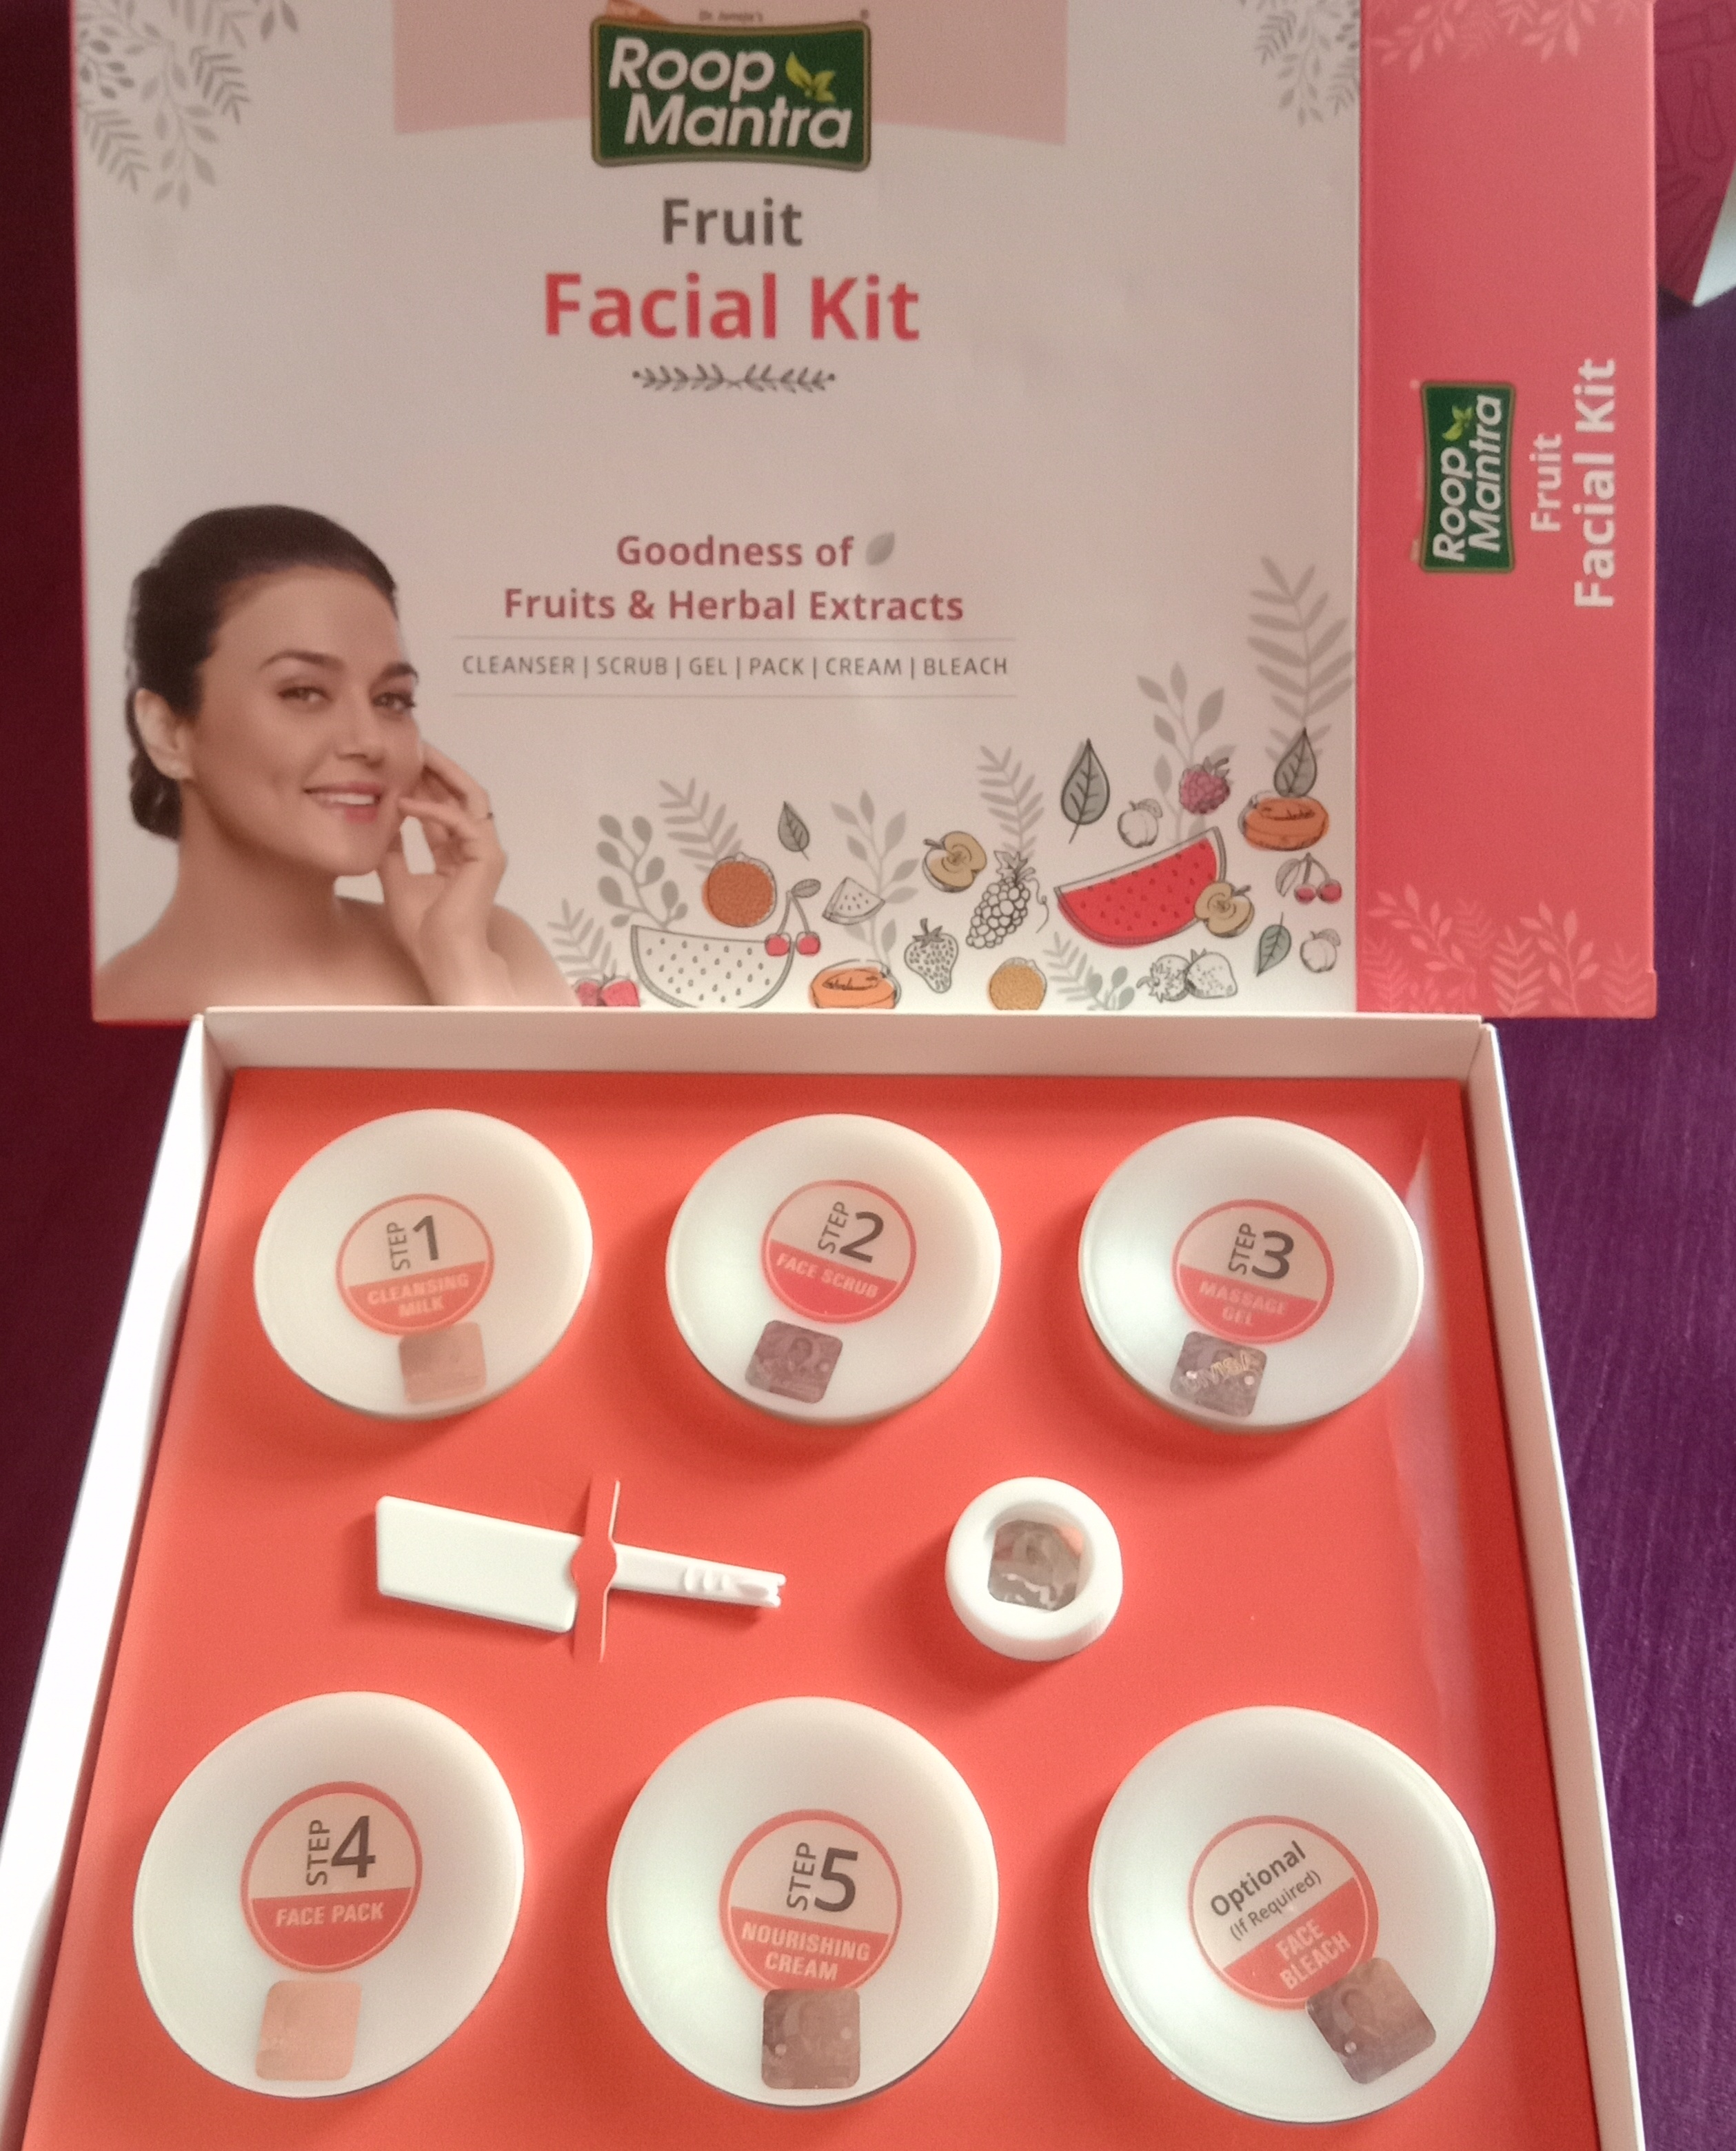 Roop Mantra Fruit Facial Kit-In love with this facial kit-By sufiaansarii-2